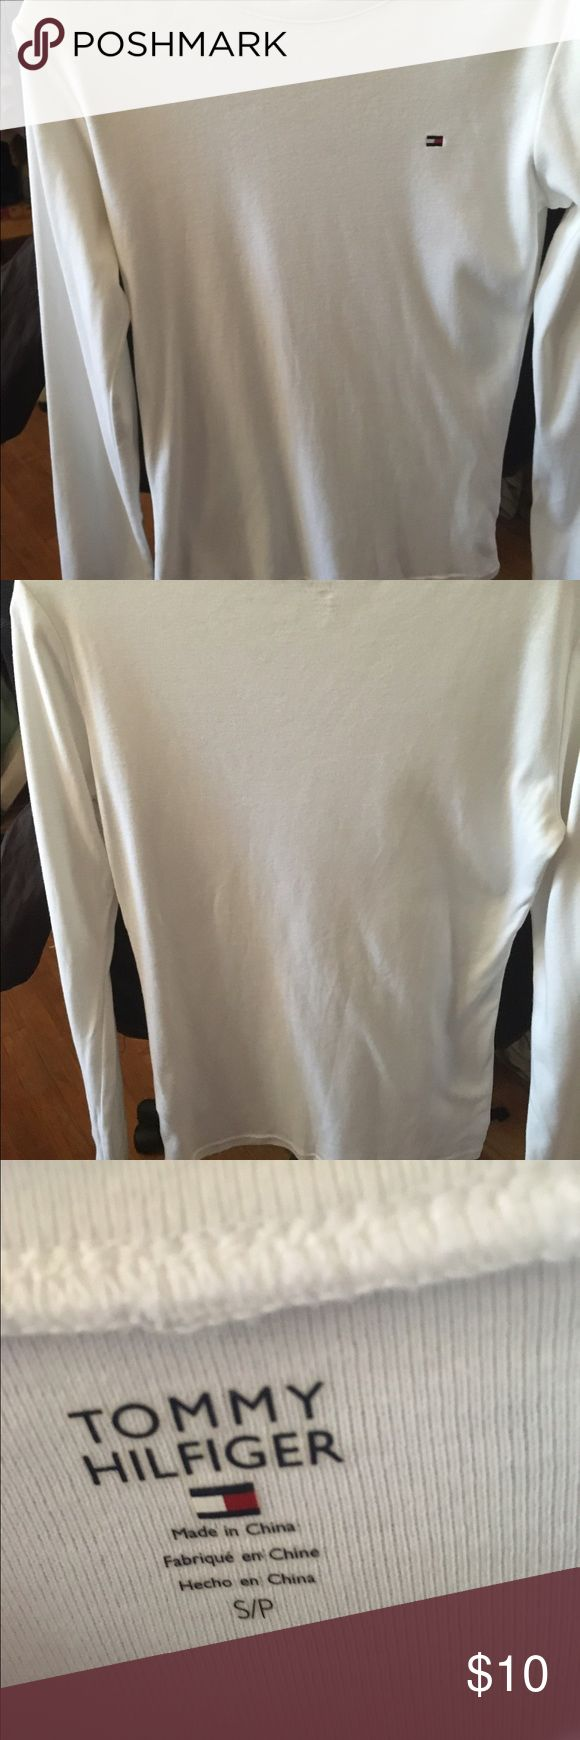 Tommy Hilfiger white long sleeved tshirt - small Basic white tshirt in a size small. Barely worn, machine washable. Long sleeves. From a smoke-free and pet-free home. Ships quickly! Tommy Hilfiger Tops Tees - Long Sleeve